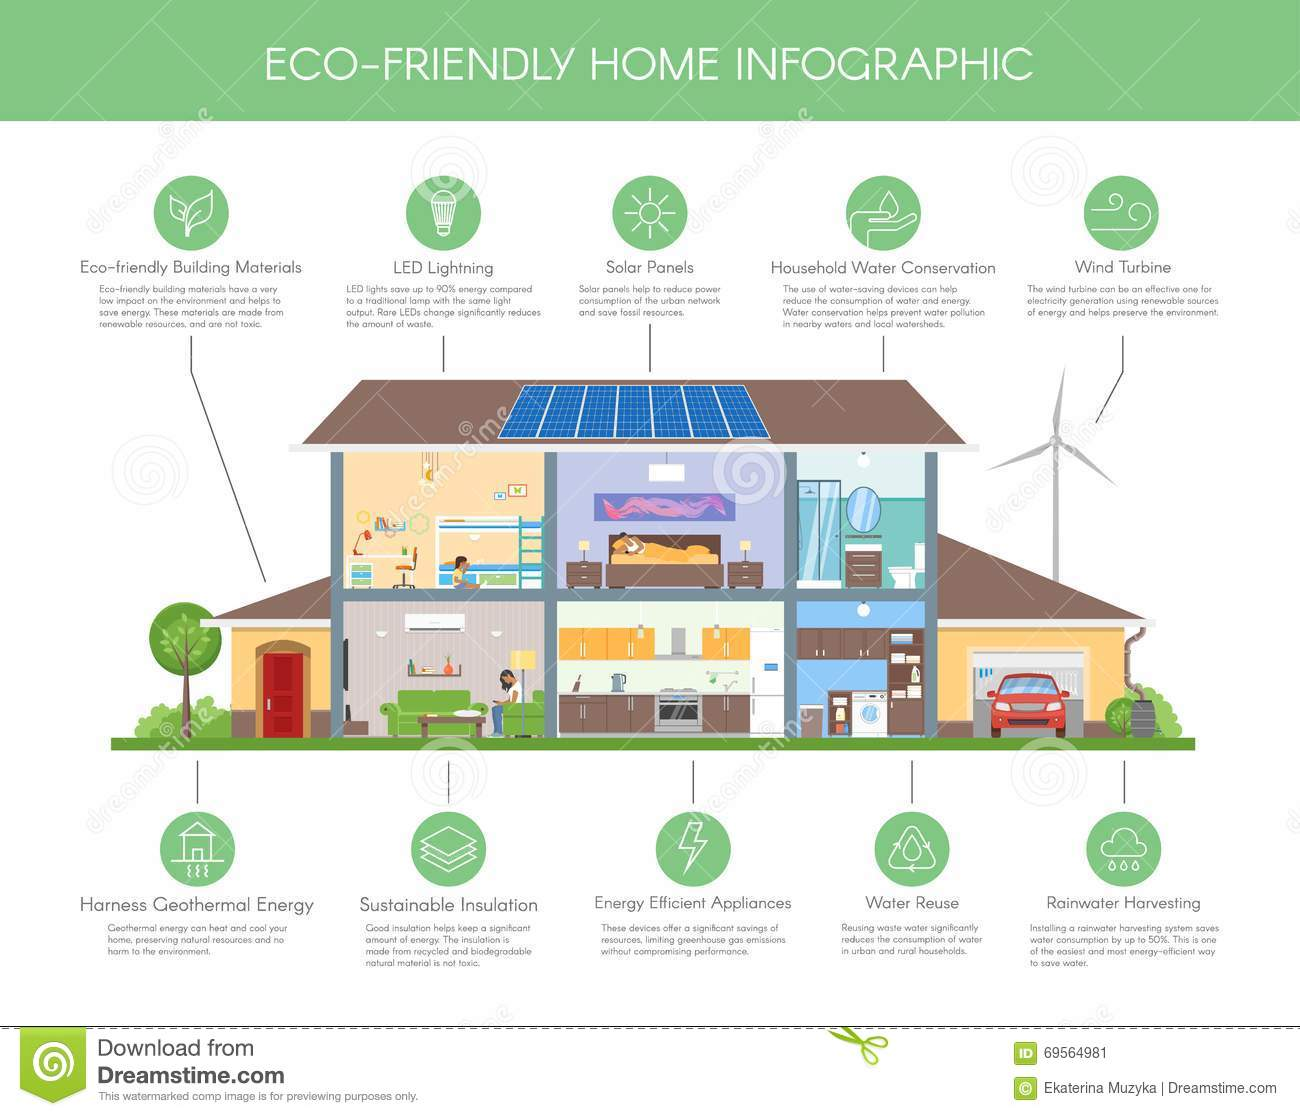 Eco Friendly Home House Design: Eco-friendly Home Infographic Concept Vector Illustration